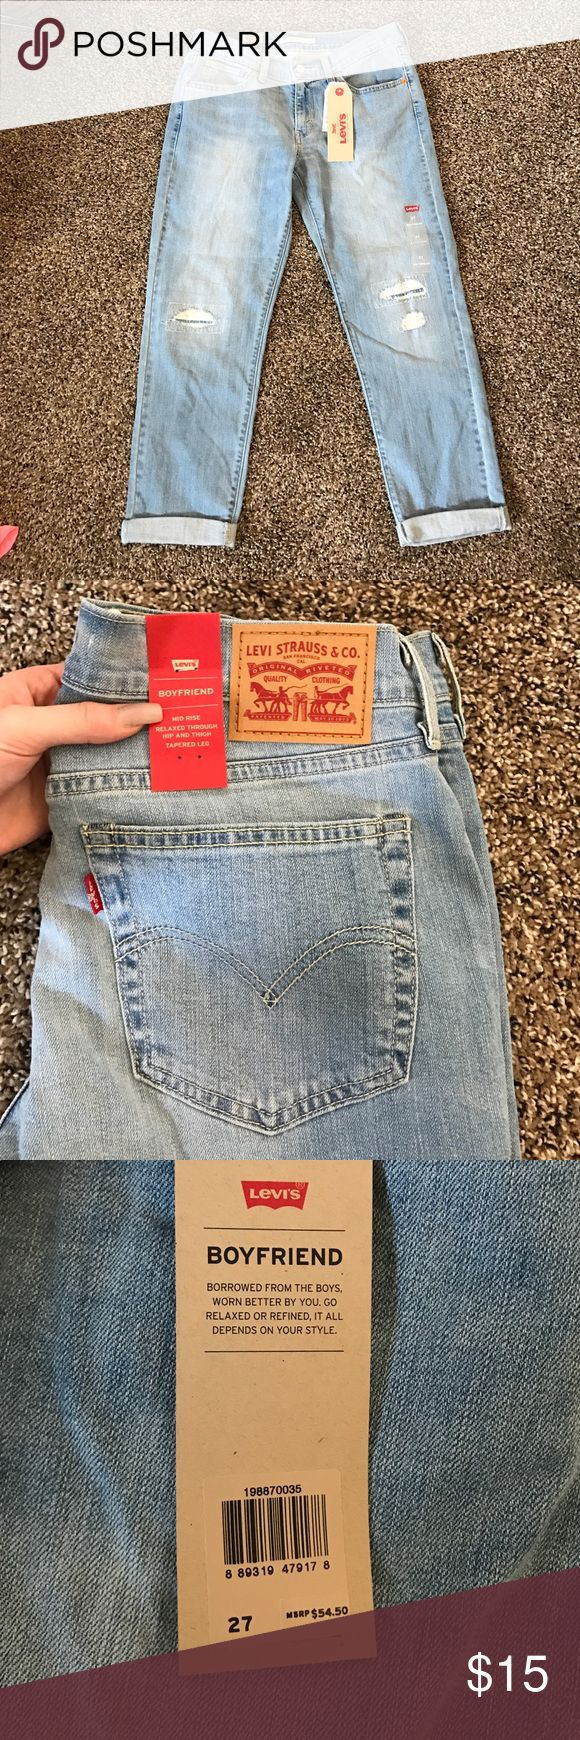 "Levi's jeans Size 27 Levi's boyfriend jeans, never worn. Fit true to size. (For reference, I'm 5'4"" and 130 lbs and these are slightly loose on me) they are 23 1/2 inches inseam Levi's Jeans Boyfriend"